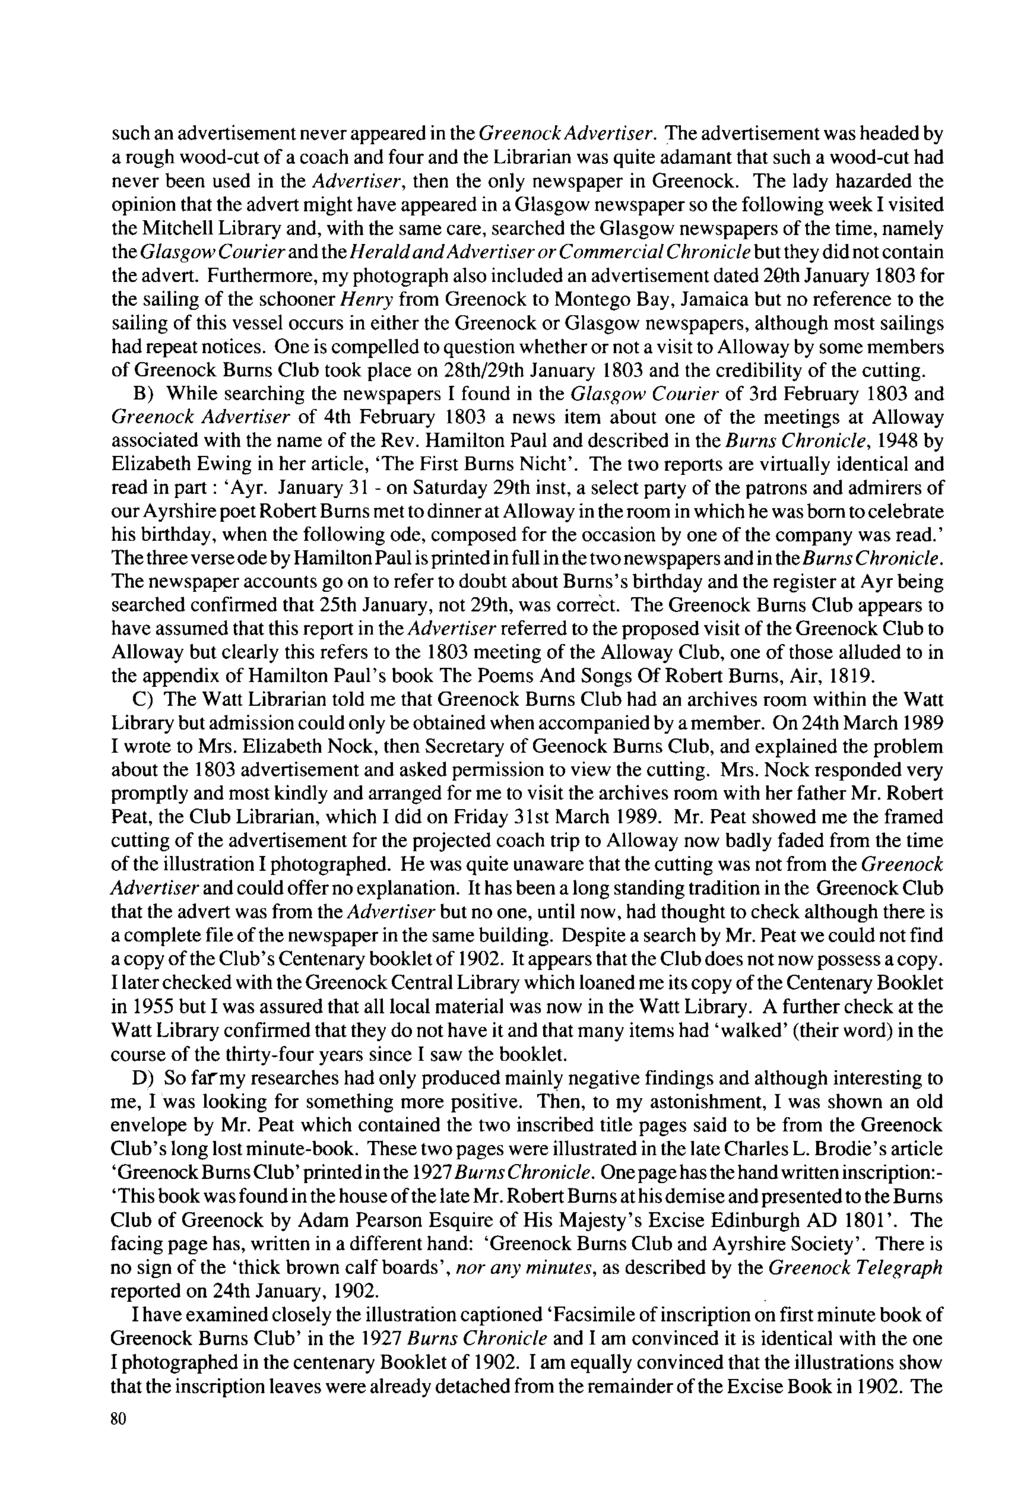 Skelly hearing guide 1093 ebook array 1991 the digital conversion of this burns chronicle was sponsored by rh religiondocbox com fandeluxe Image collections